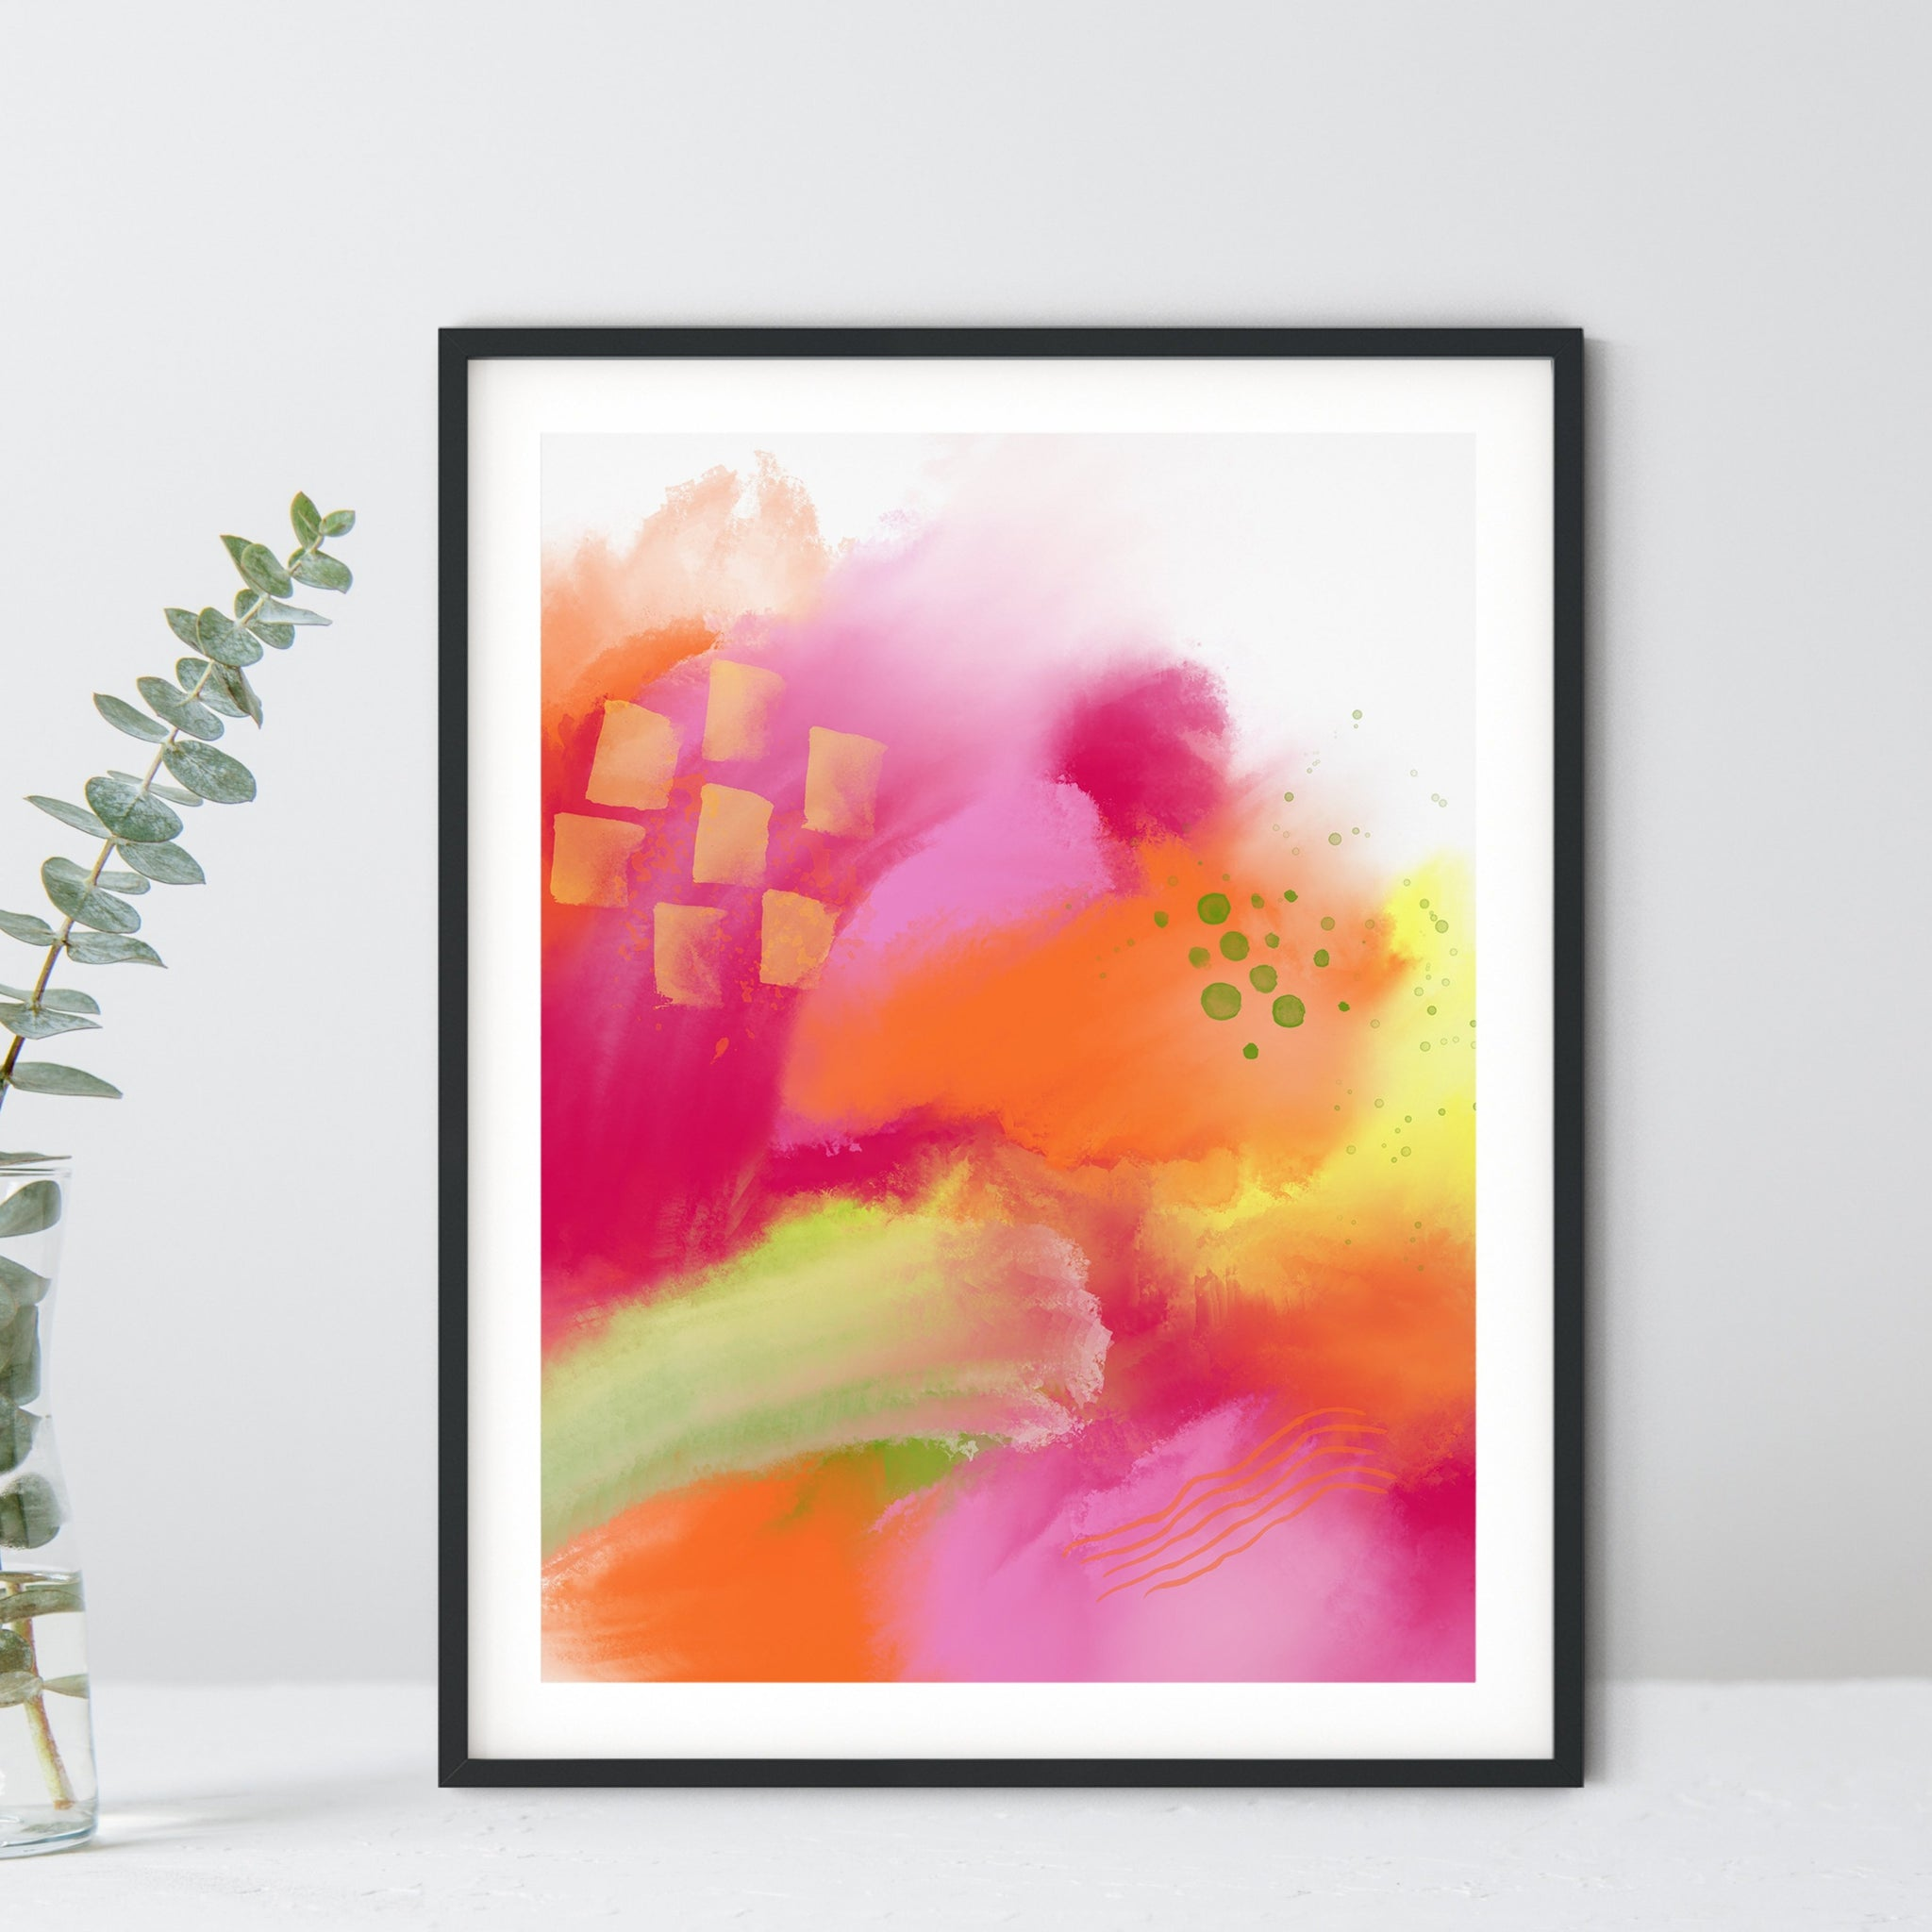 Summer Love 2 - print in orange, magenta, yellow, green